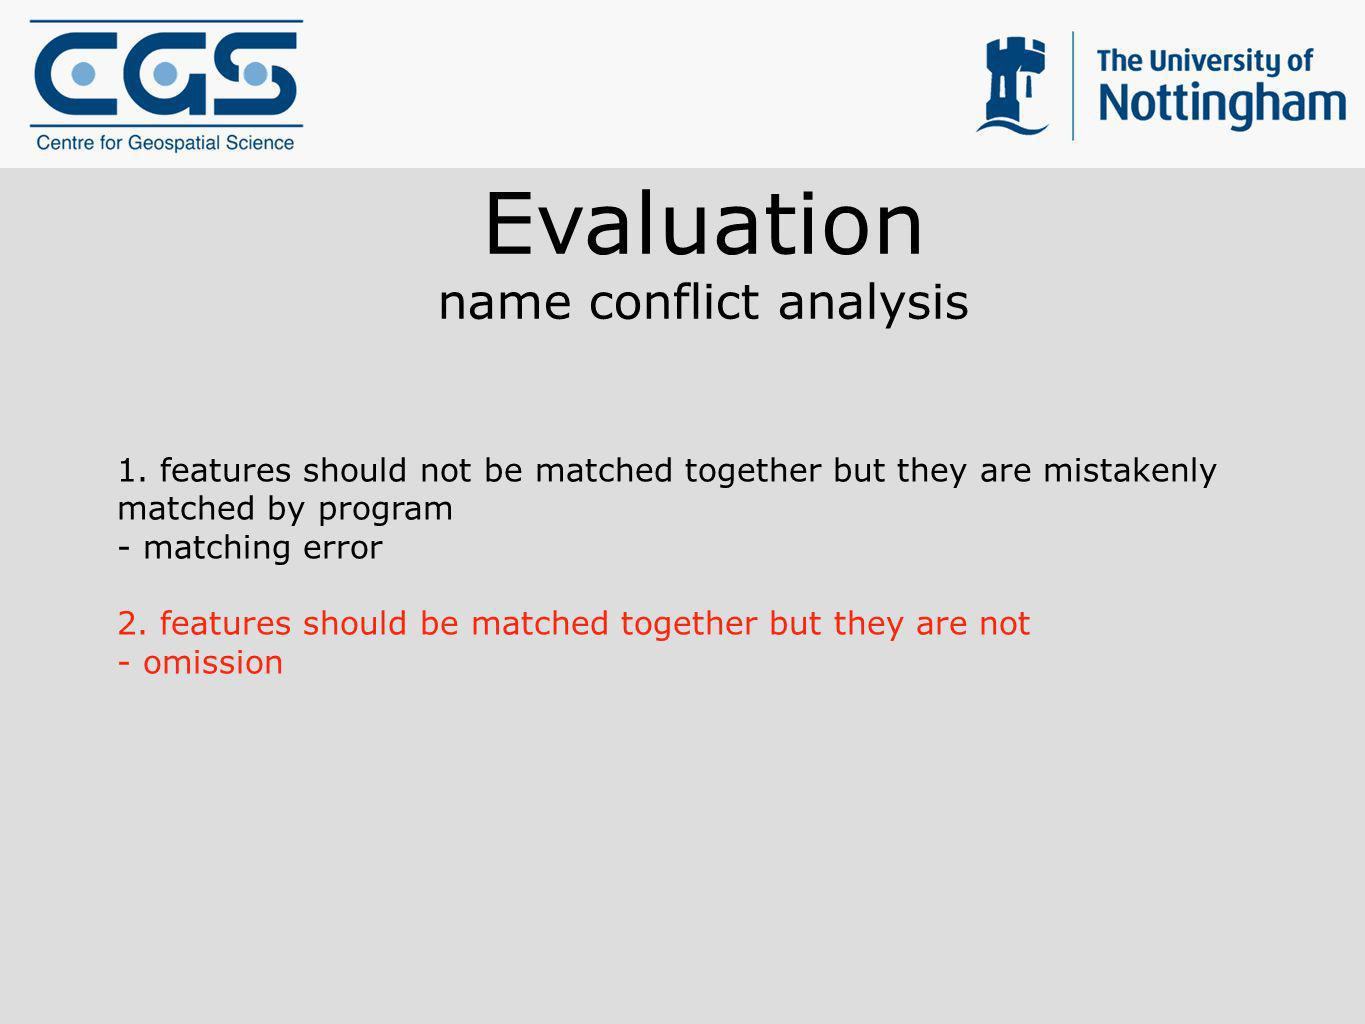 Evaluation name conflict analysis 1. features should not be matched together but they are mistakenly matched by program - matching error 2. features s